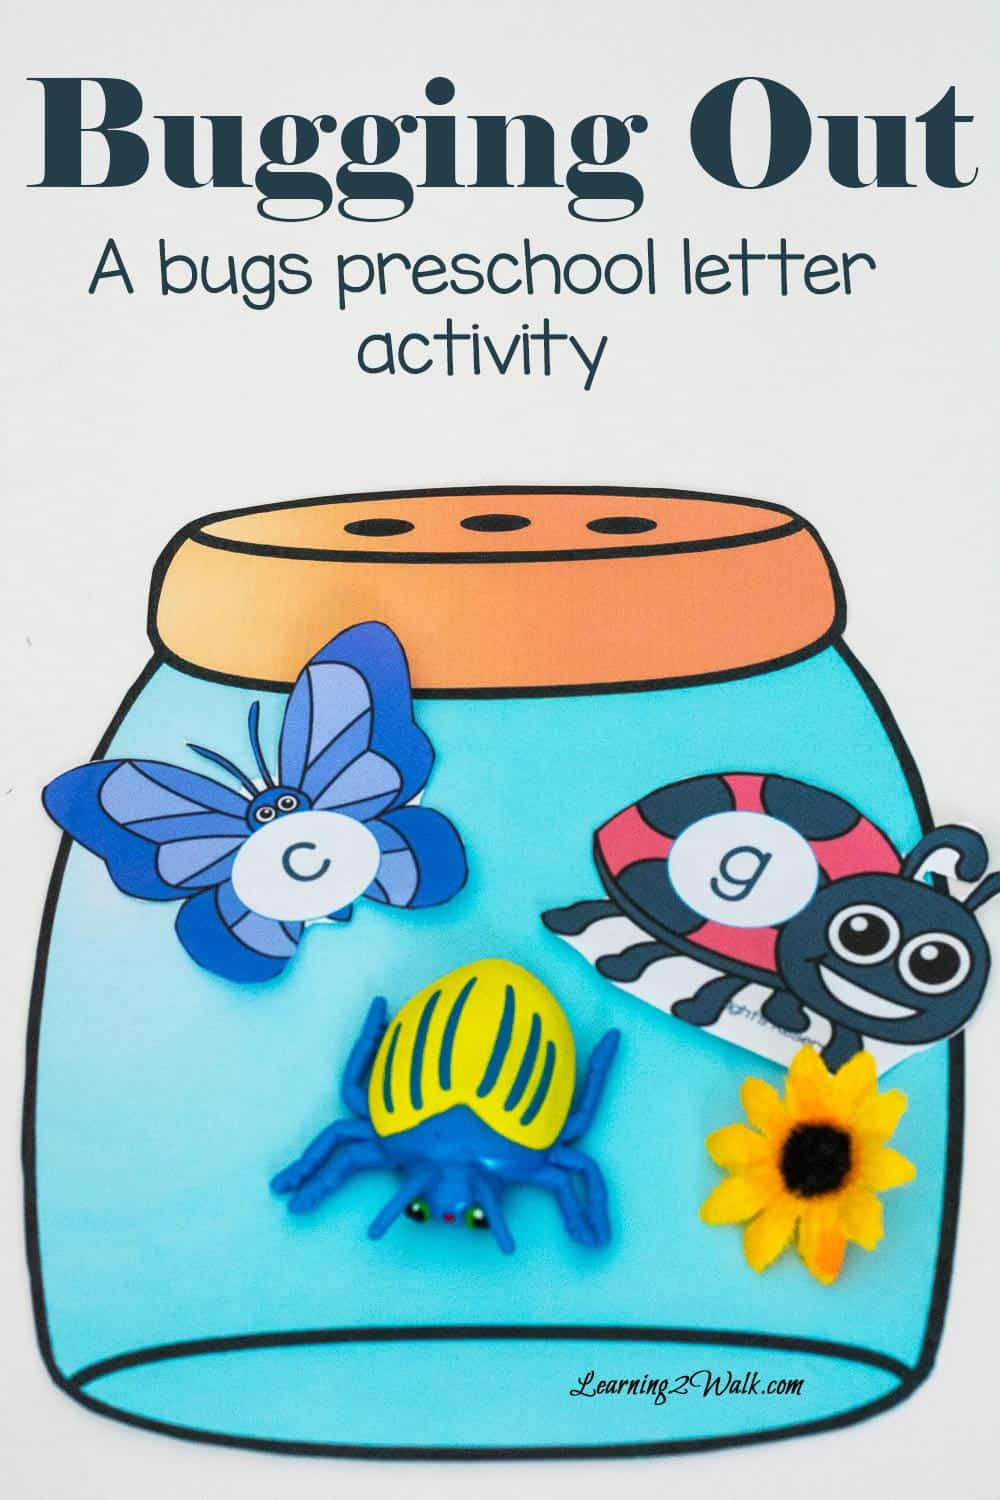 A Bug Preschool Letter Activity- Bugging Out